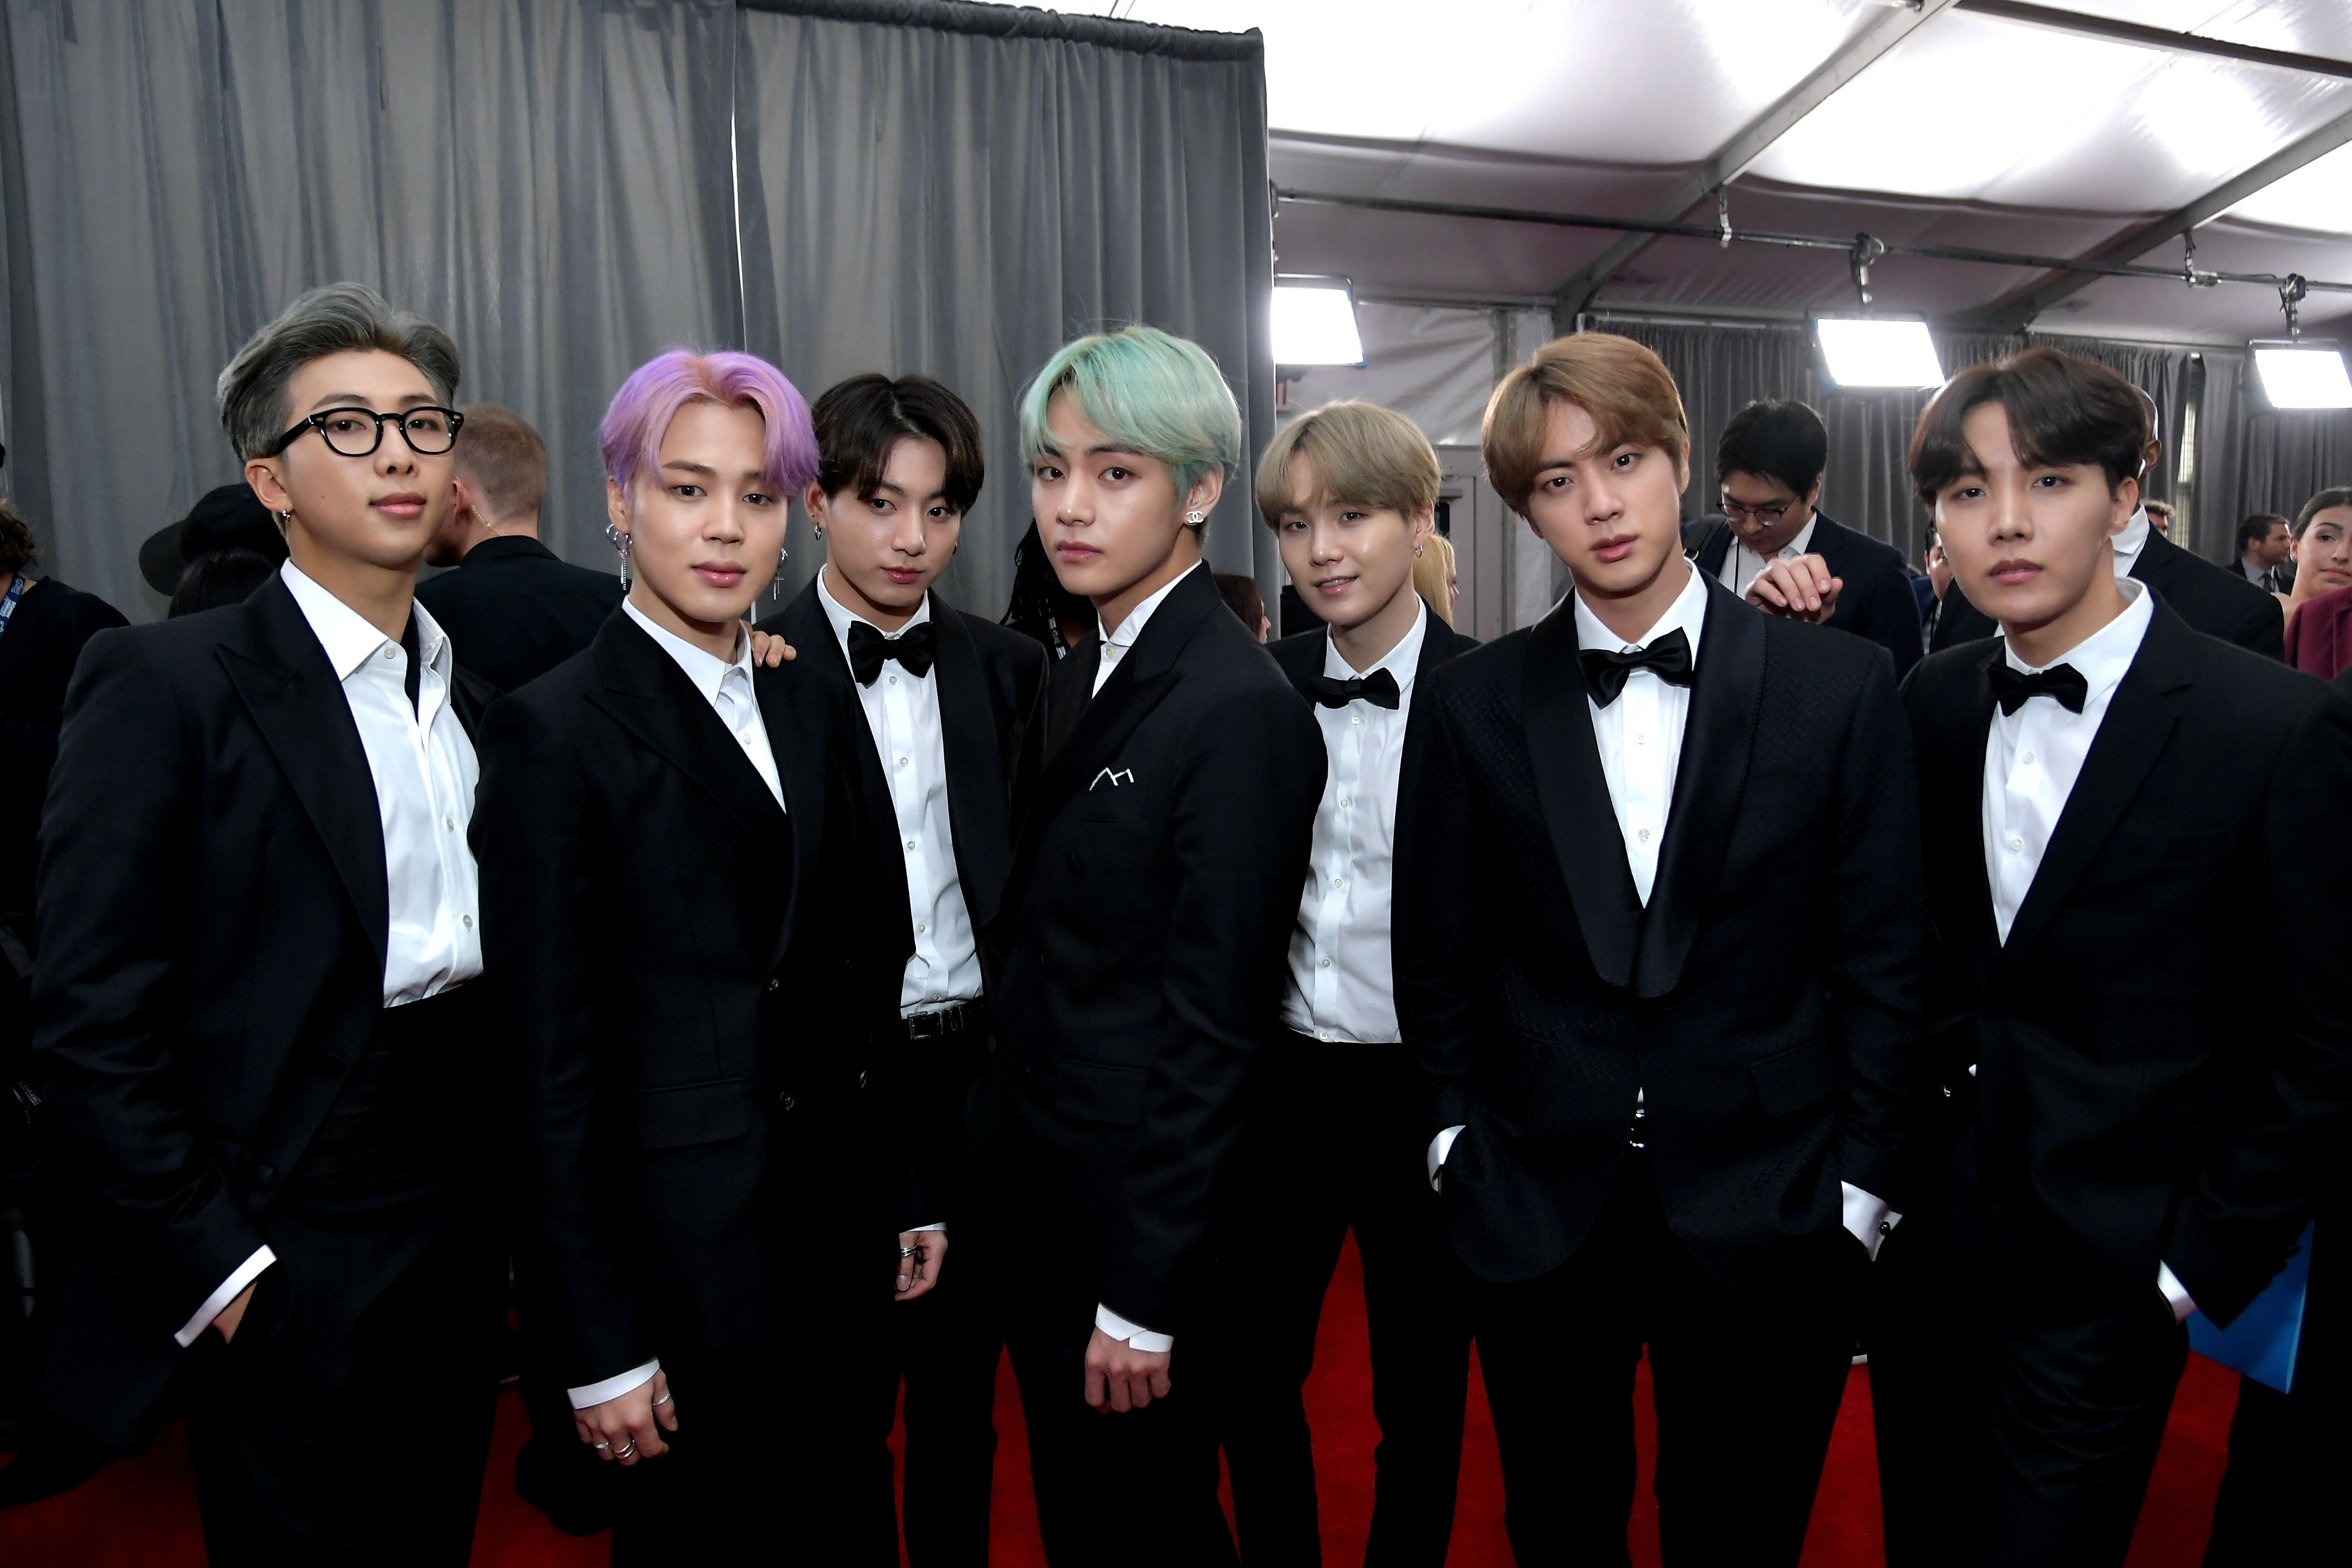 What Bts S V Rm Suga Jimin Jungkook Jin And J Hope Wore On Grammys 2019 Red Carpet